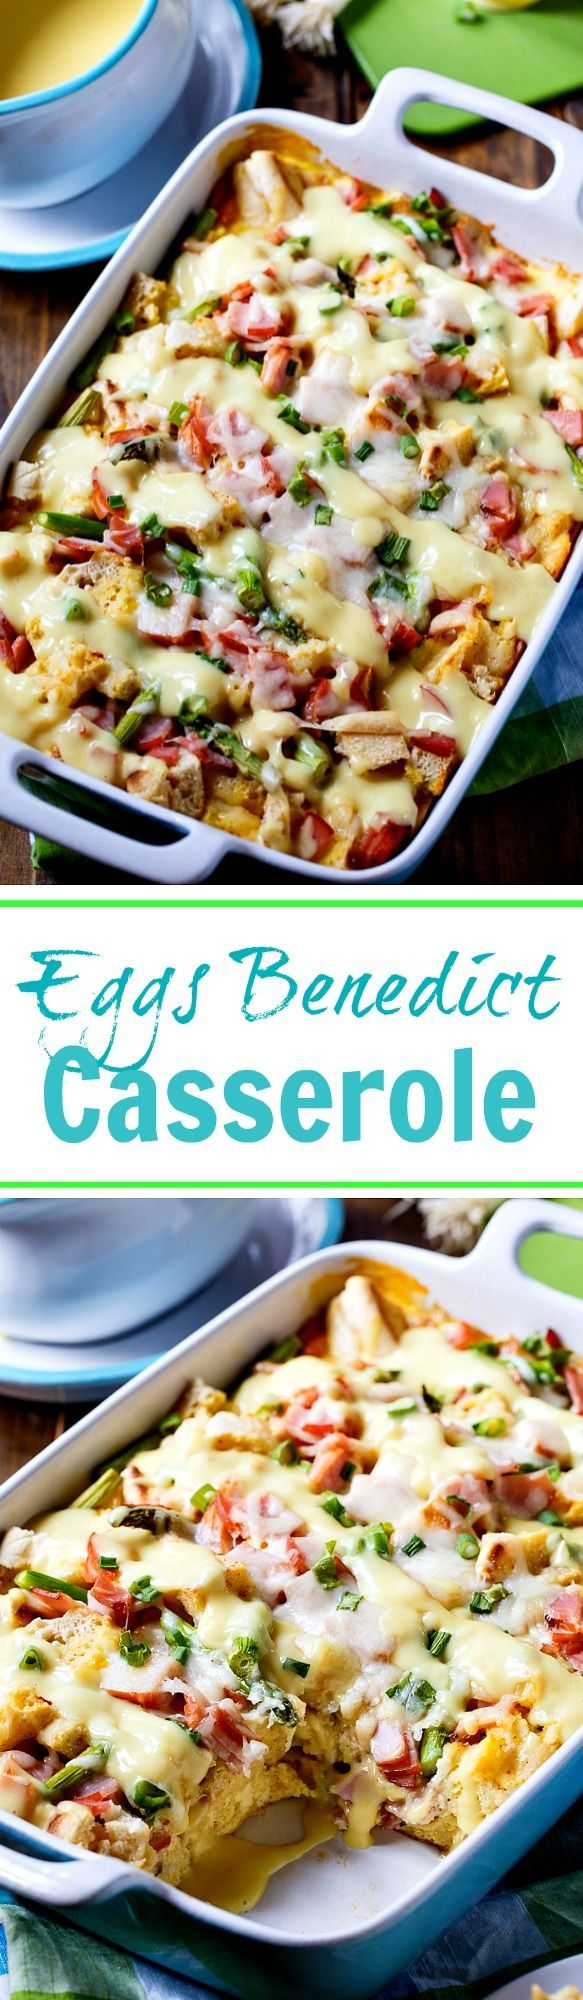 Eggs Benedict Casserole | recipe from Spicy Southern Kitchen